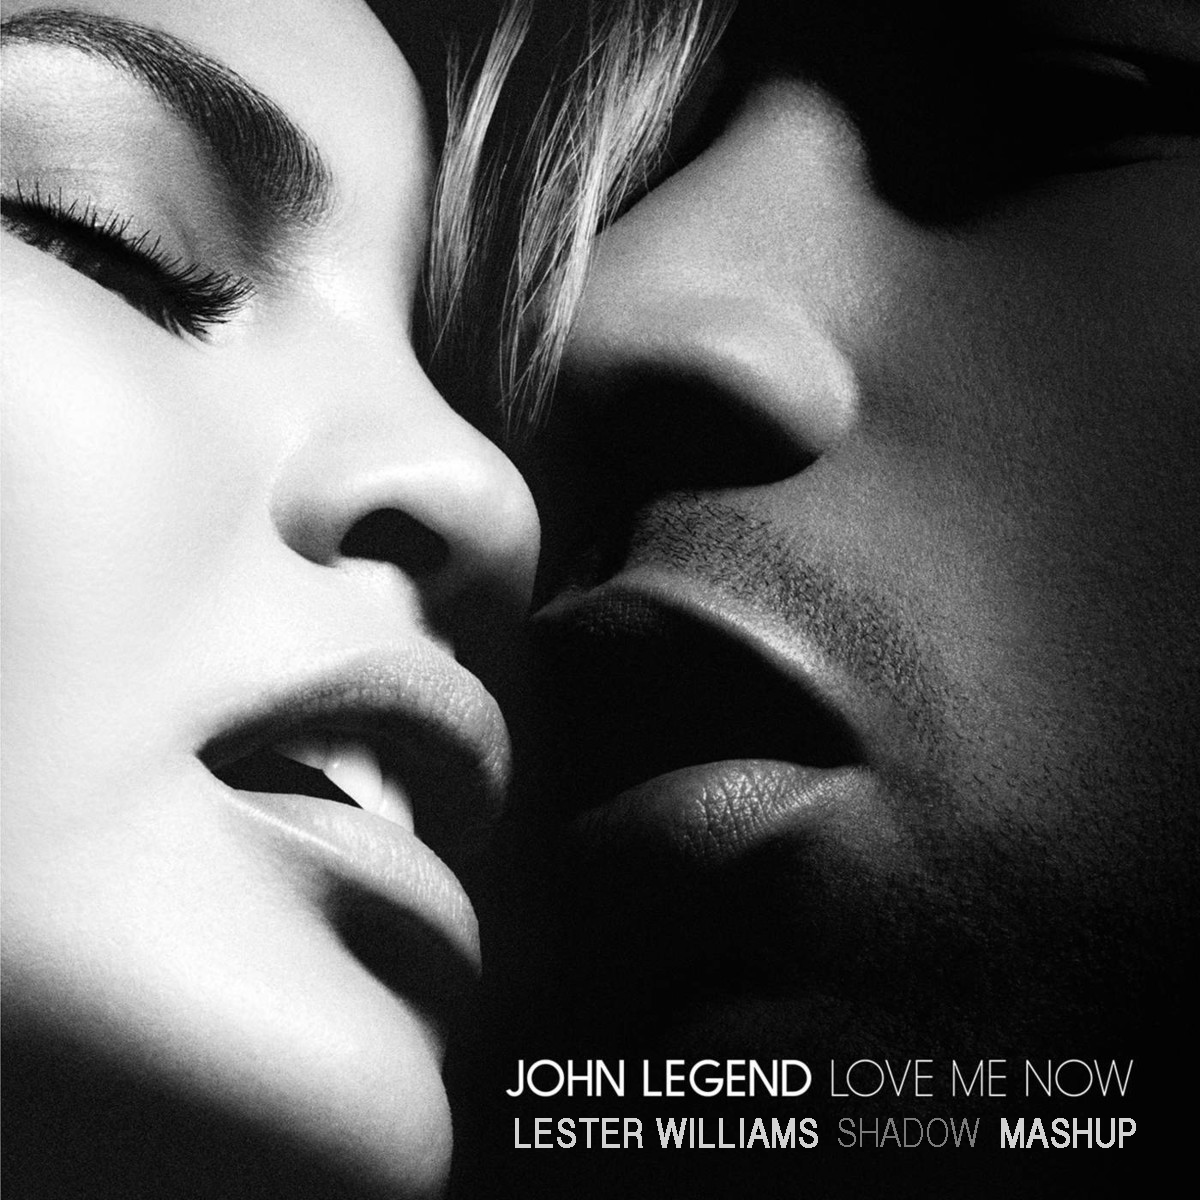 Love Me Now (Lester Williams Shadows Mashup)